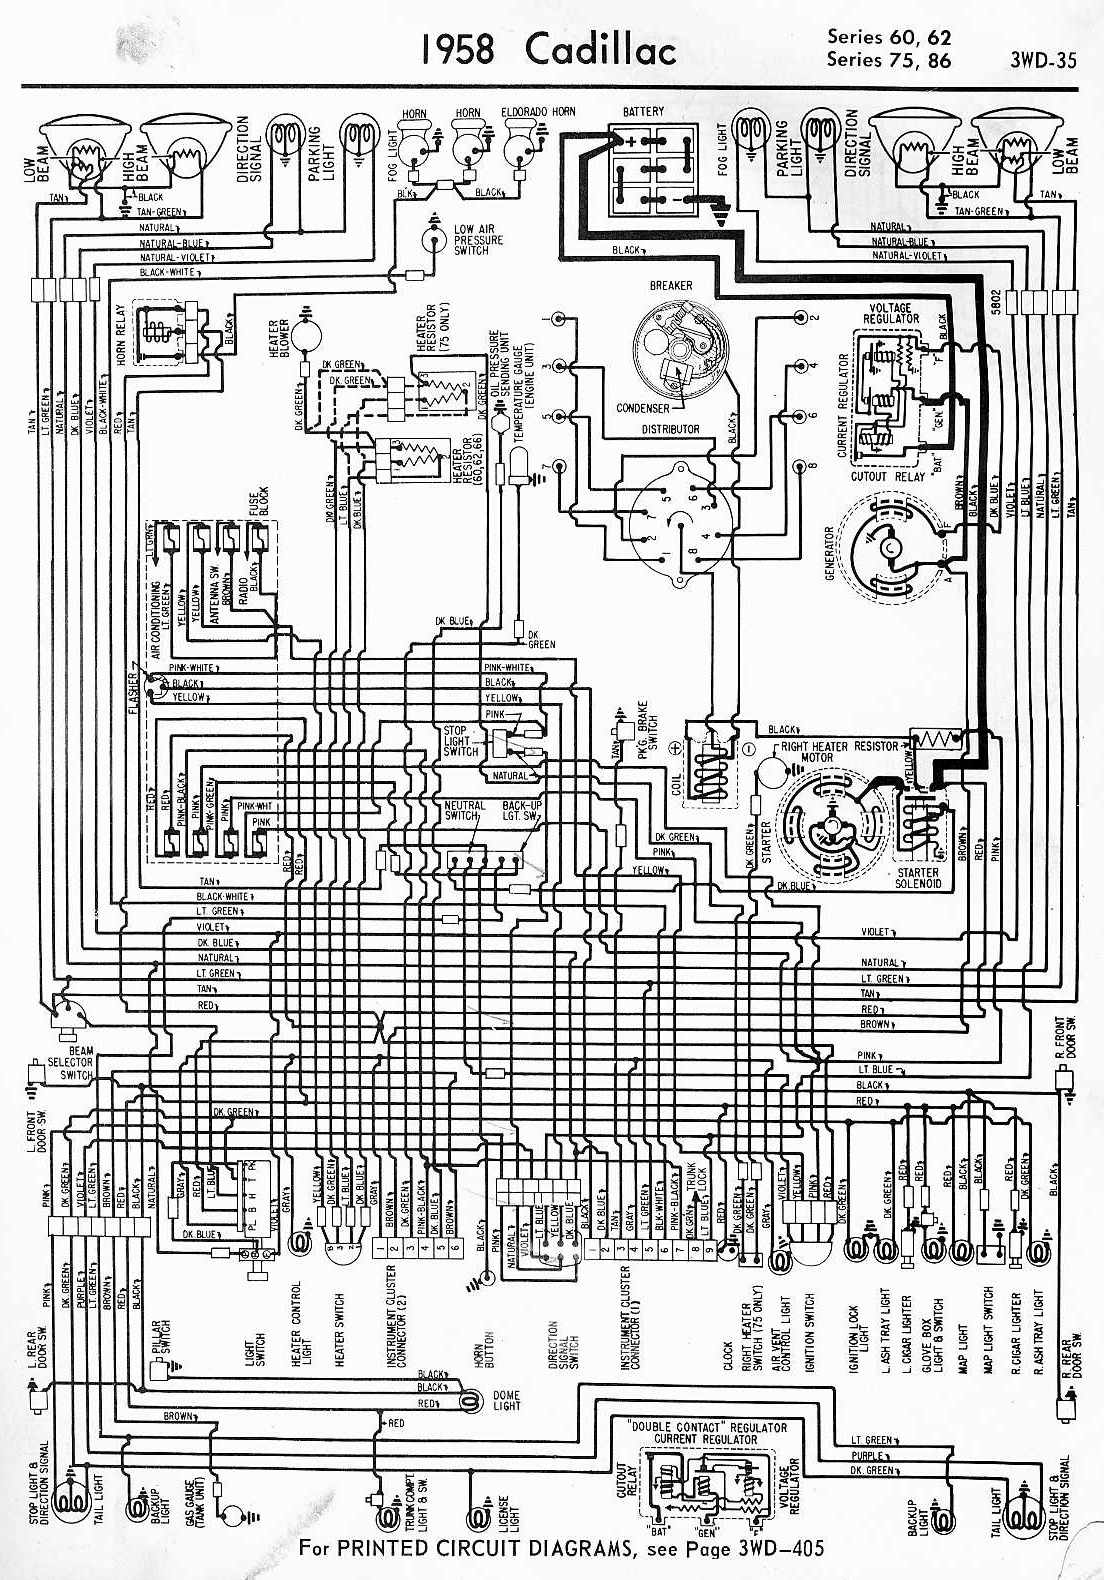 wiring diagram for 1958 cadillac 60 62 75 86 series?tu003d1508149295 1957 cadillac wiring harness wiring diagram name